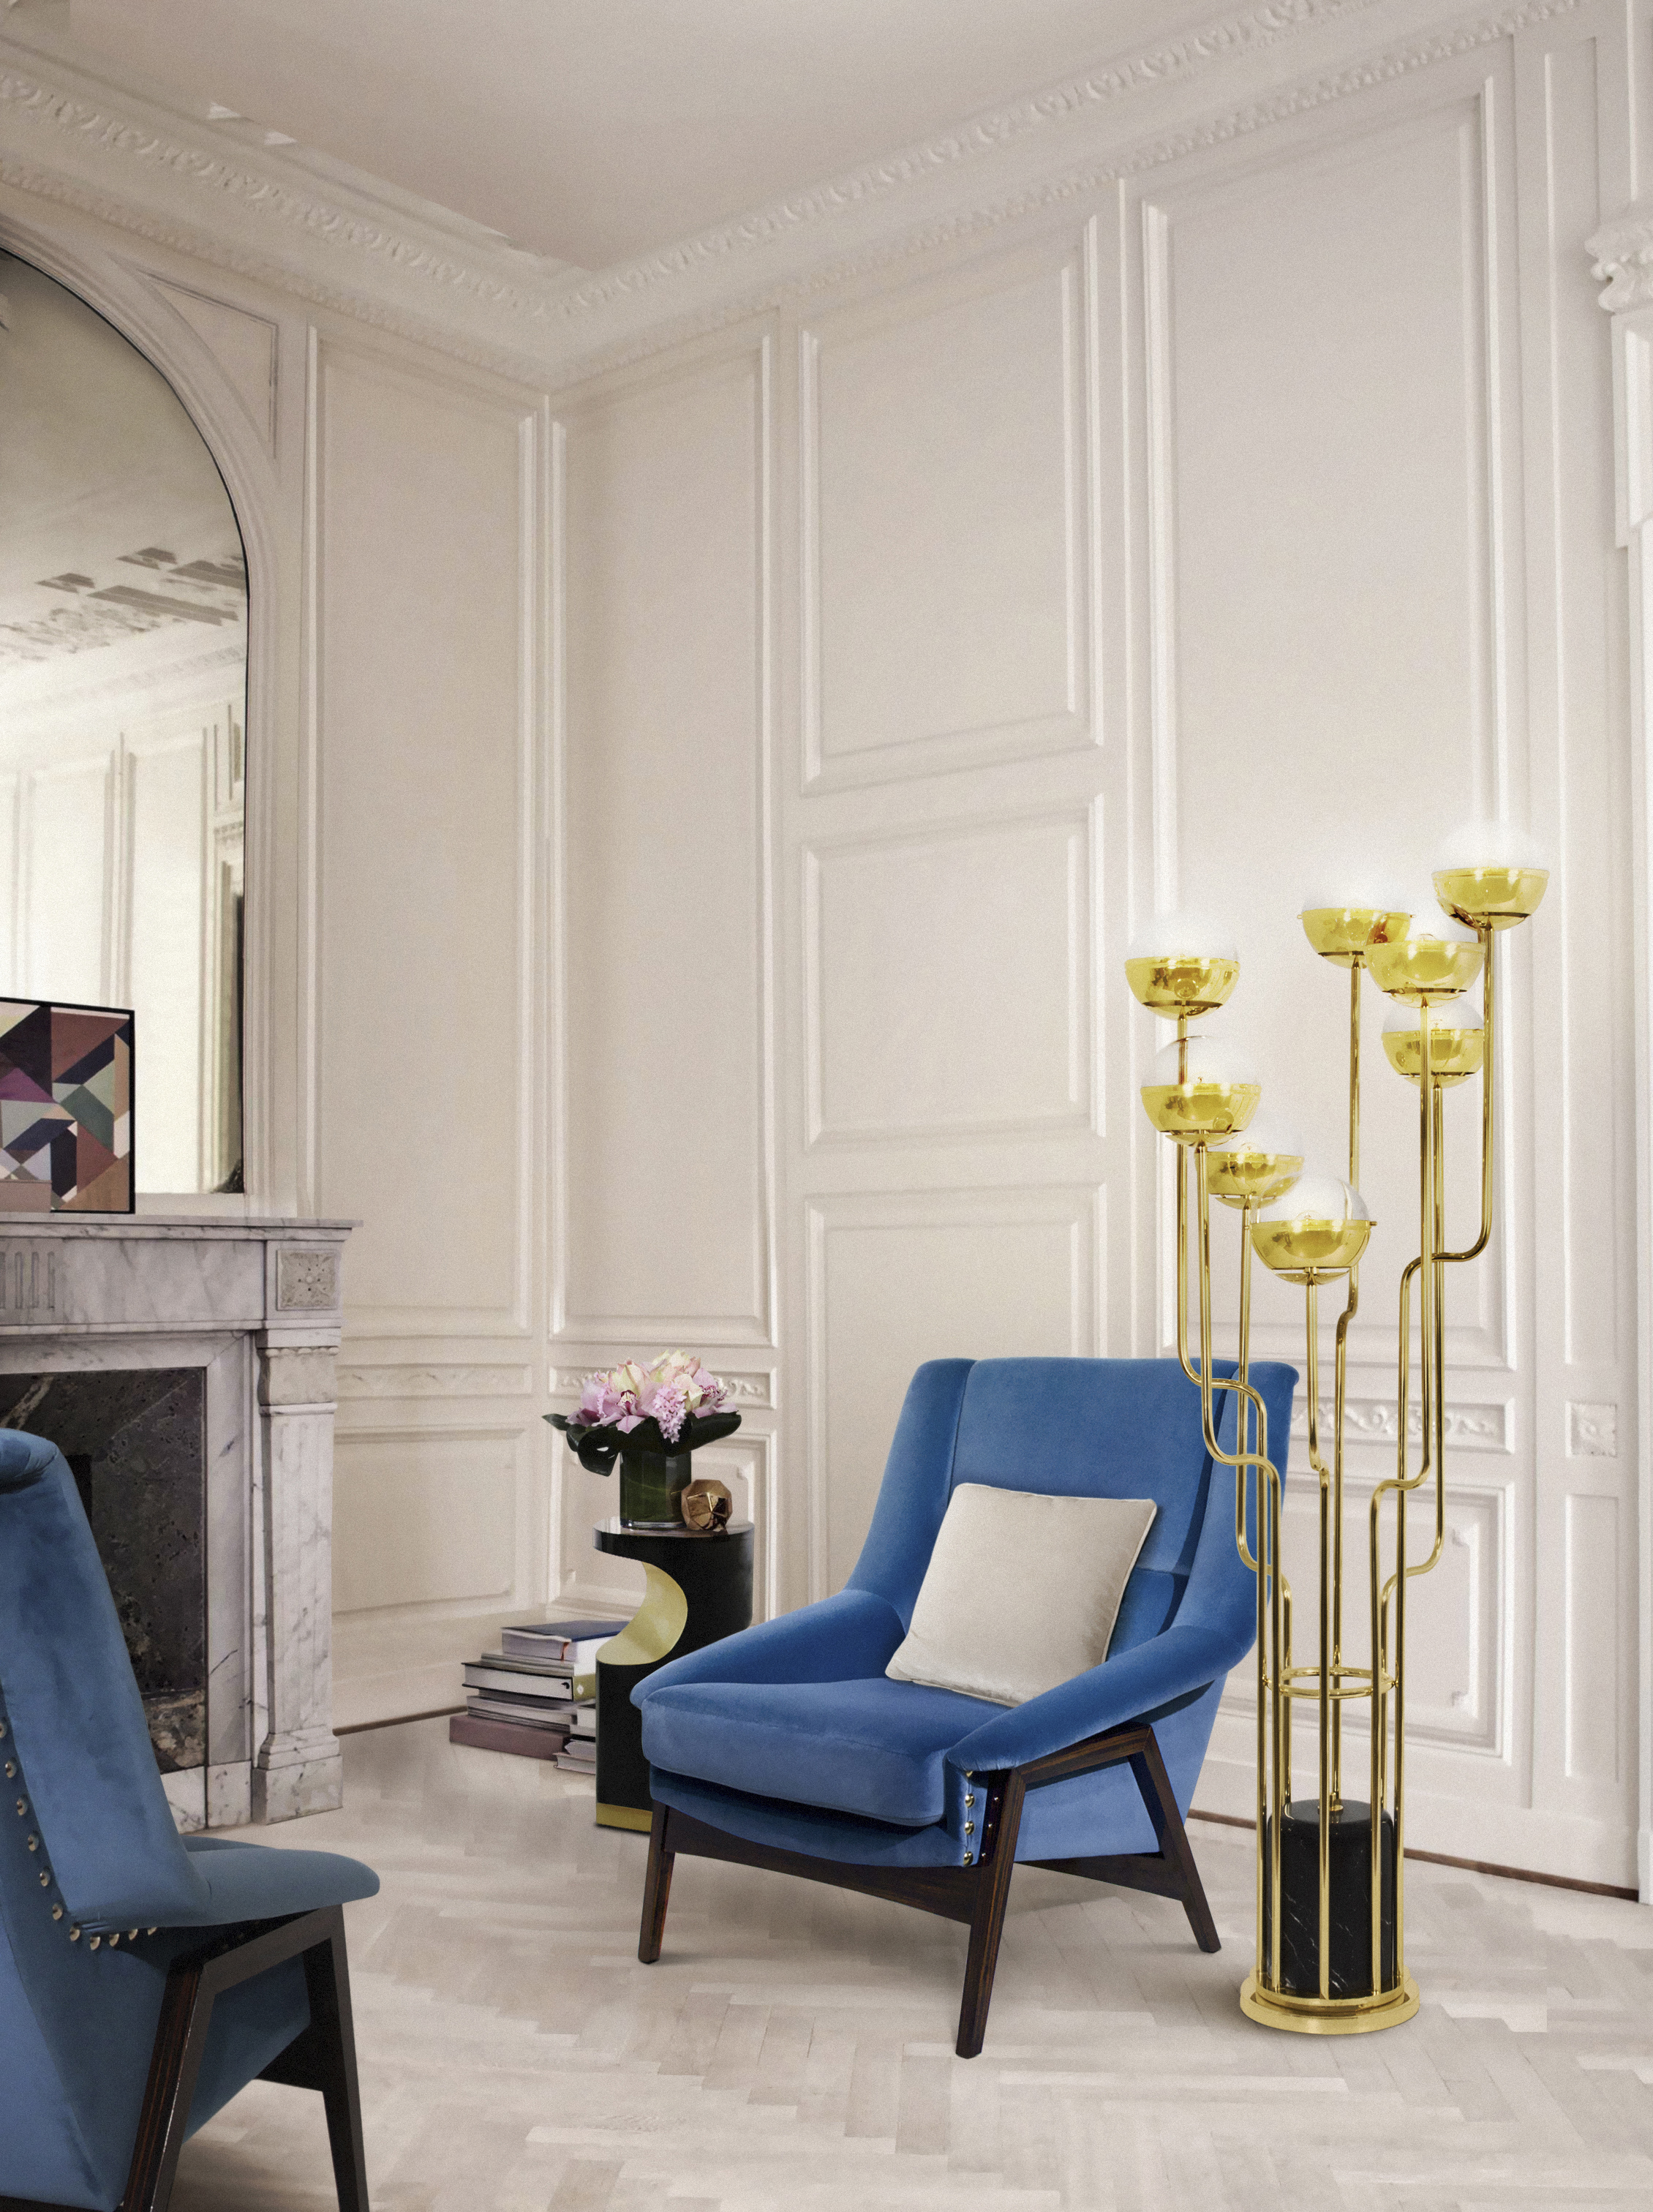 5 Modern Chairs That You Cant Miss at Maison et Objet 18 maison et objet 5 Modern Chairs That You Cant Miss at Maison et Objet 18 5 Modern Chairs That You Cant Miss at Maison Objet 18 6